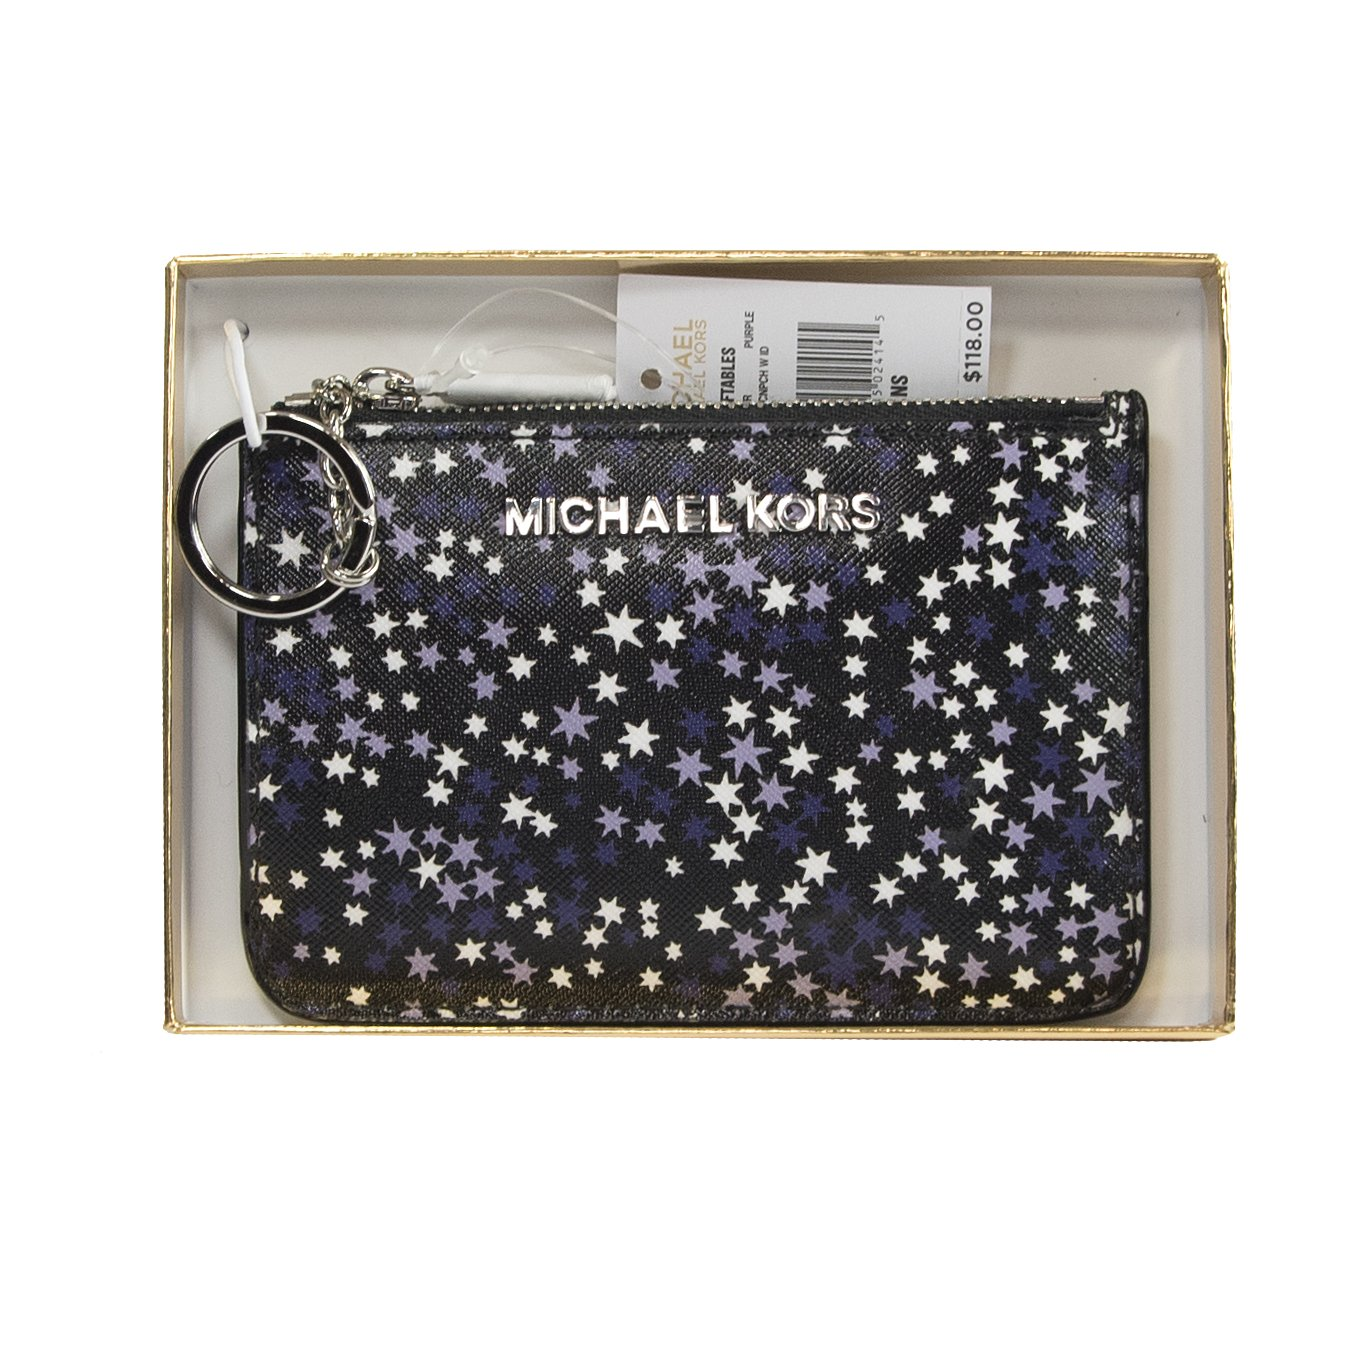 Michael Kors Purple Stars Limited Edition Jet Set Card Case Key Pouch Wallet by Michael Kors